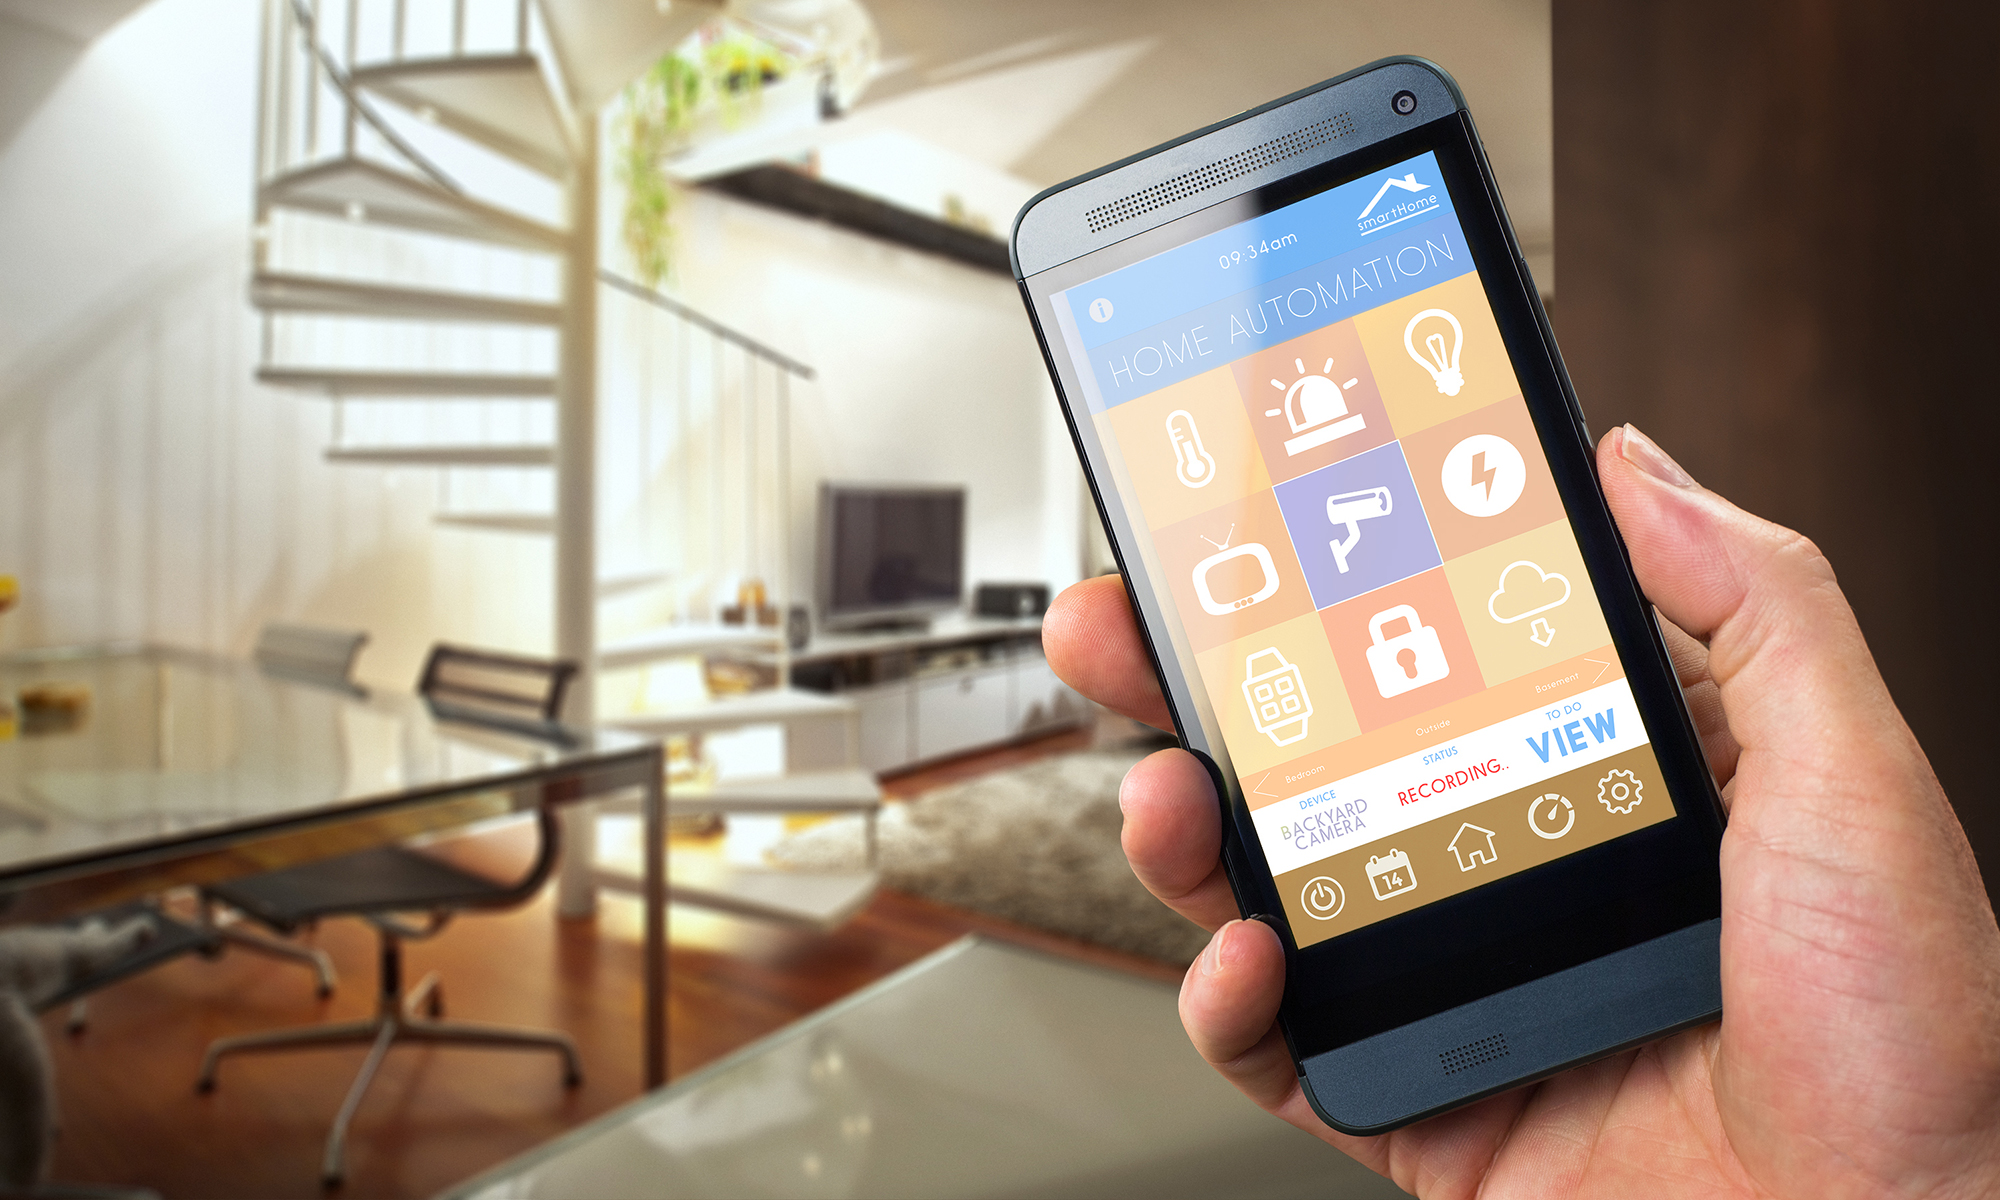 Best Home Automation System 2019 Best Smart Home Devices of 2019   Tom's Guide | Tom's Guide